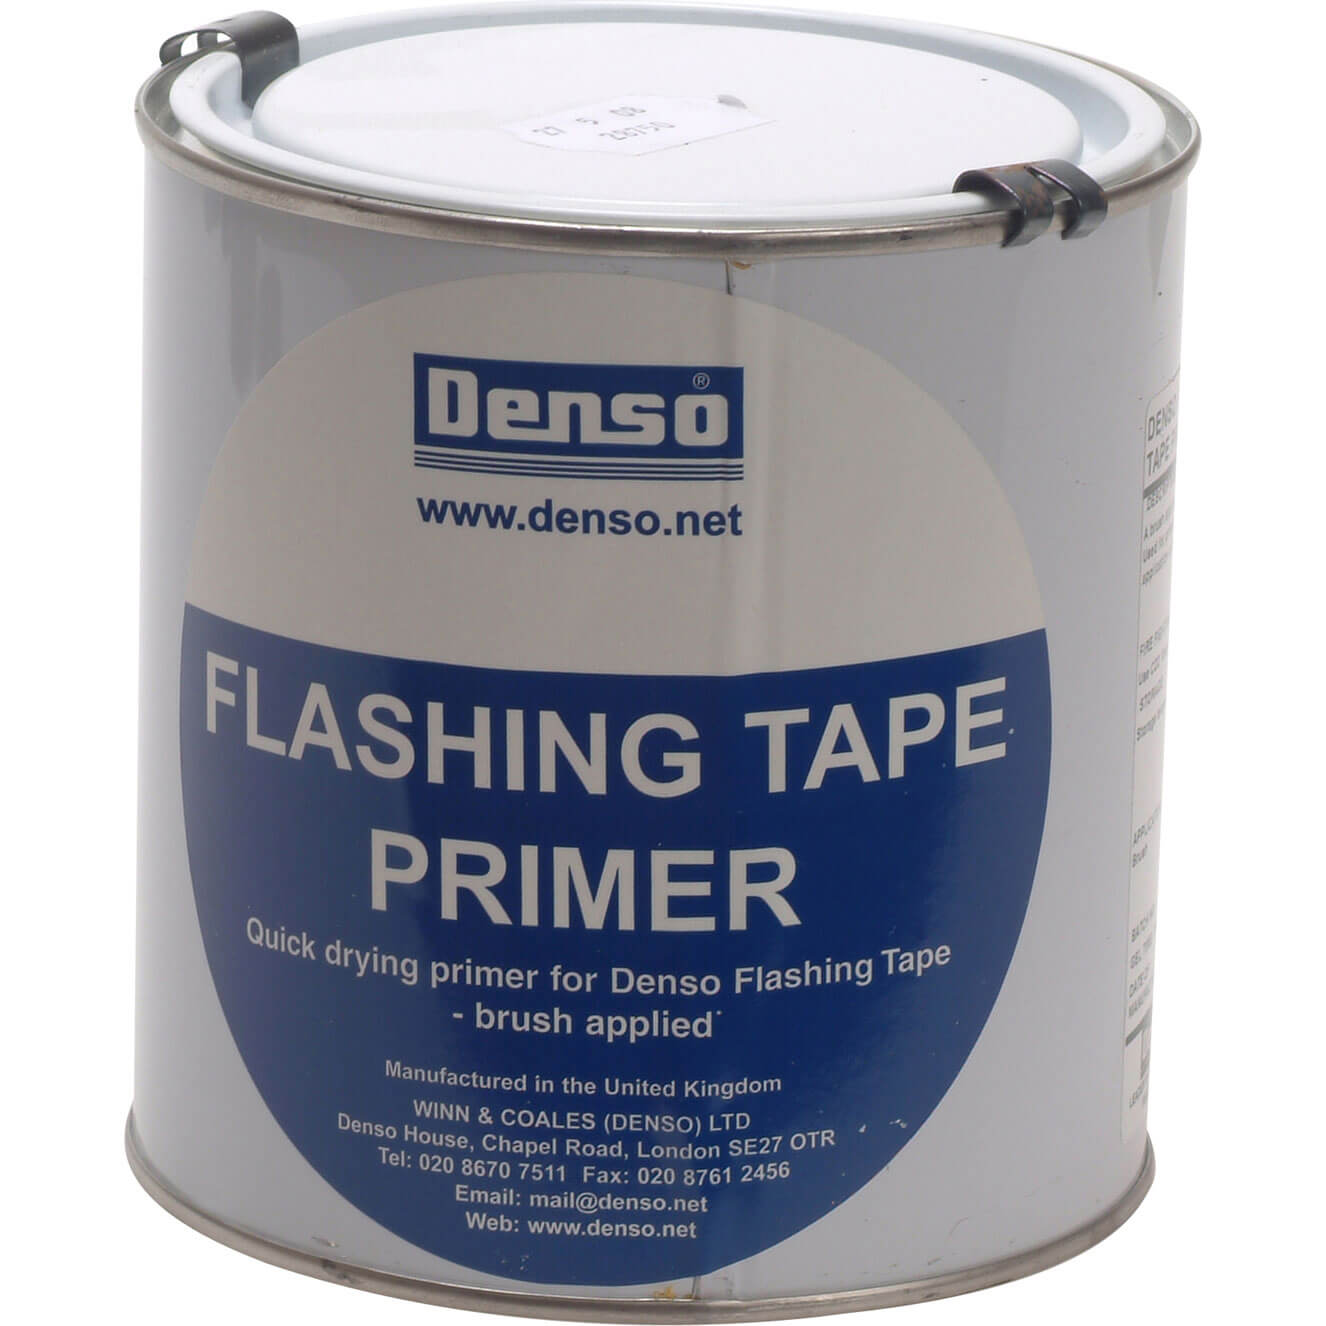 Image of Denso Tape Flashing Tape Primer 1l